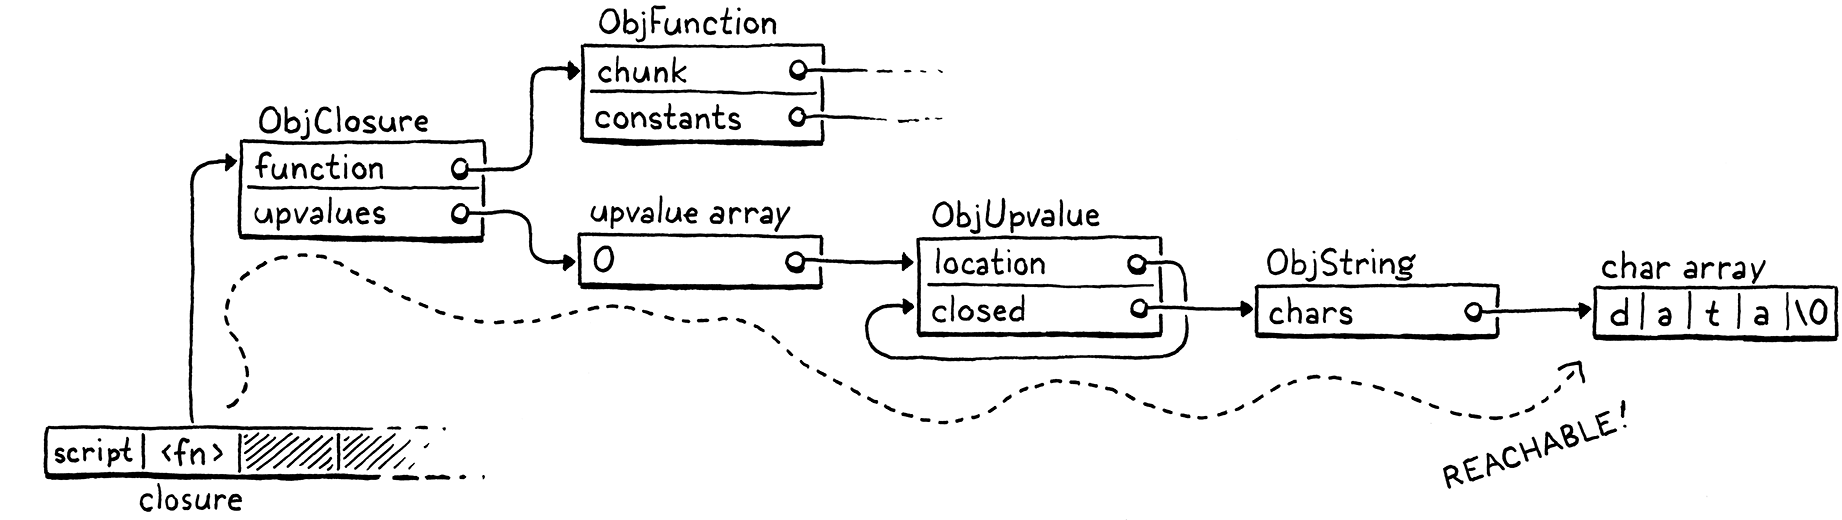 All of the referenced objects from the closure and the path to the 'data' string from the stack.